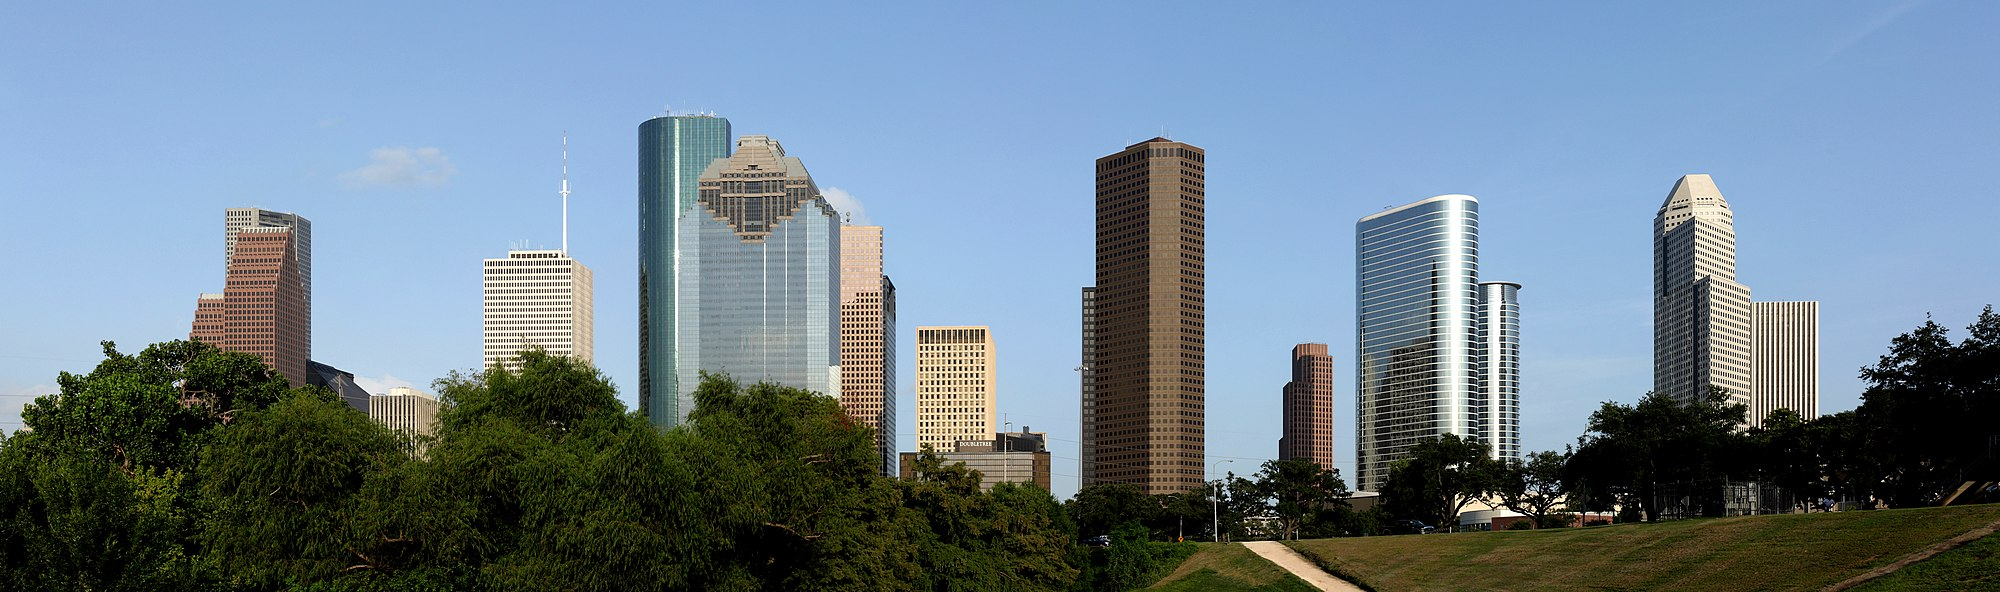 The western view of Downtown Houston skyline